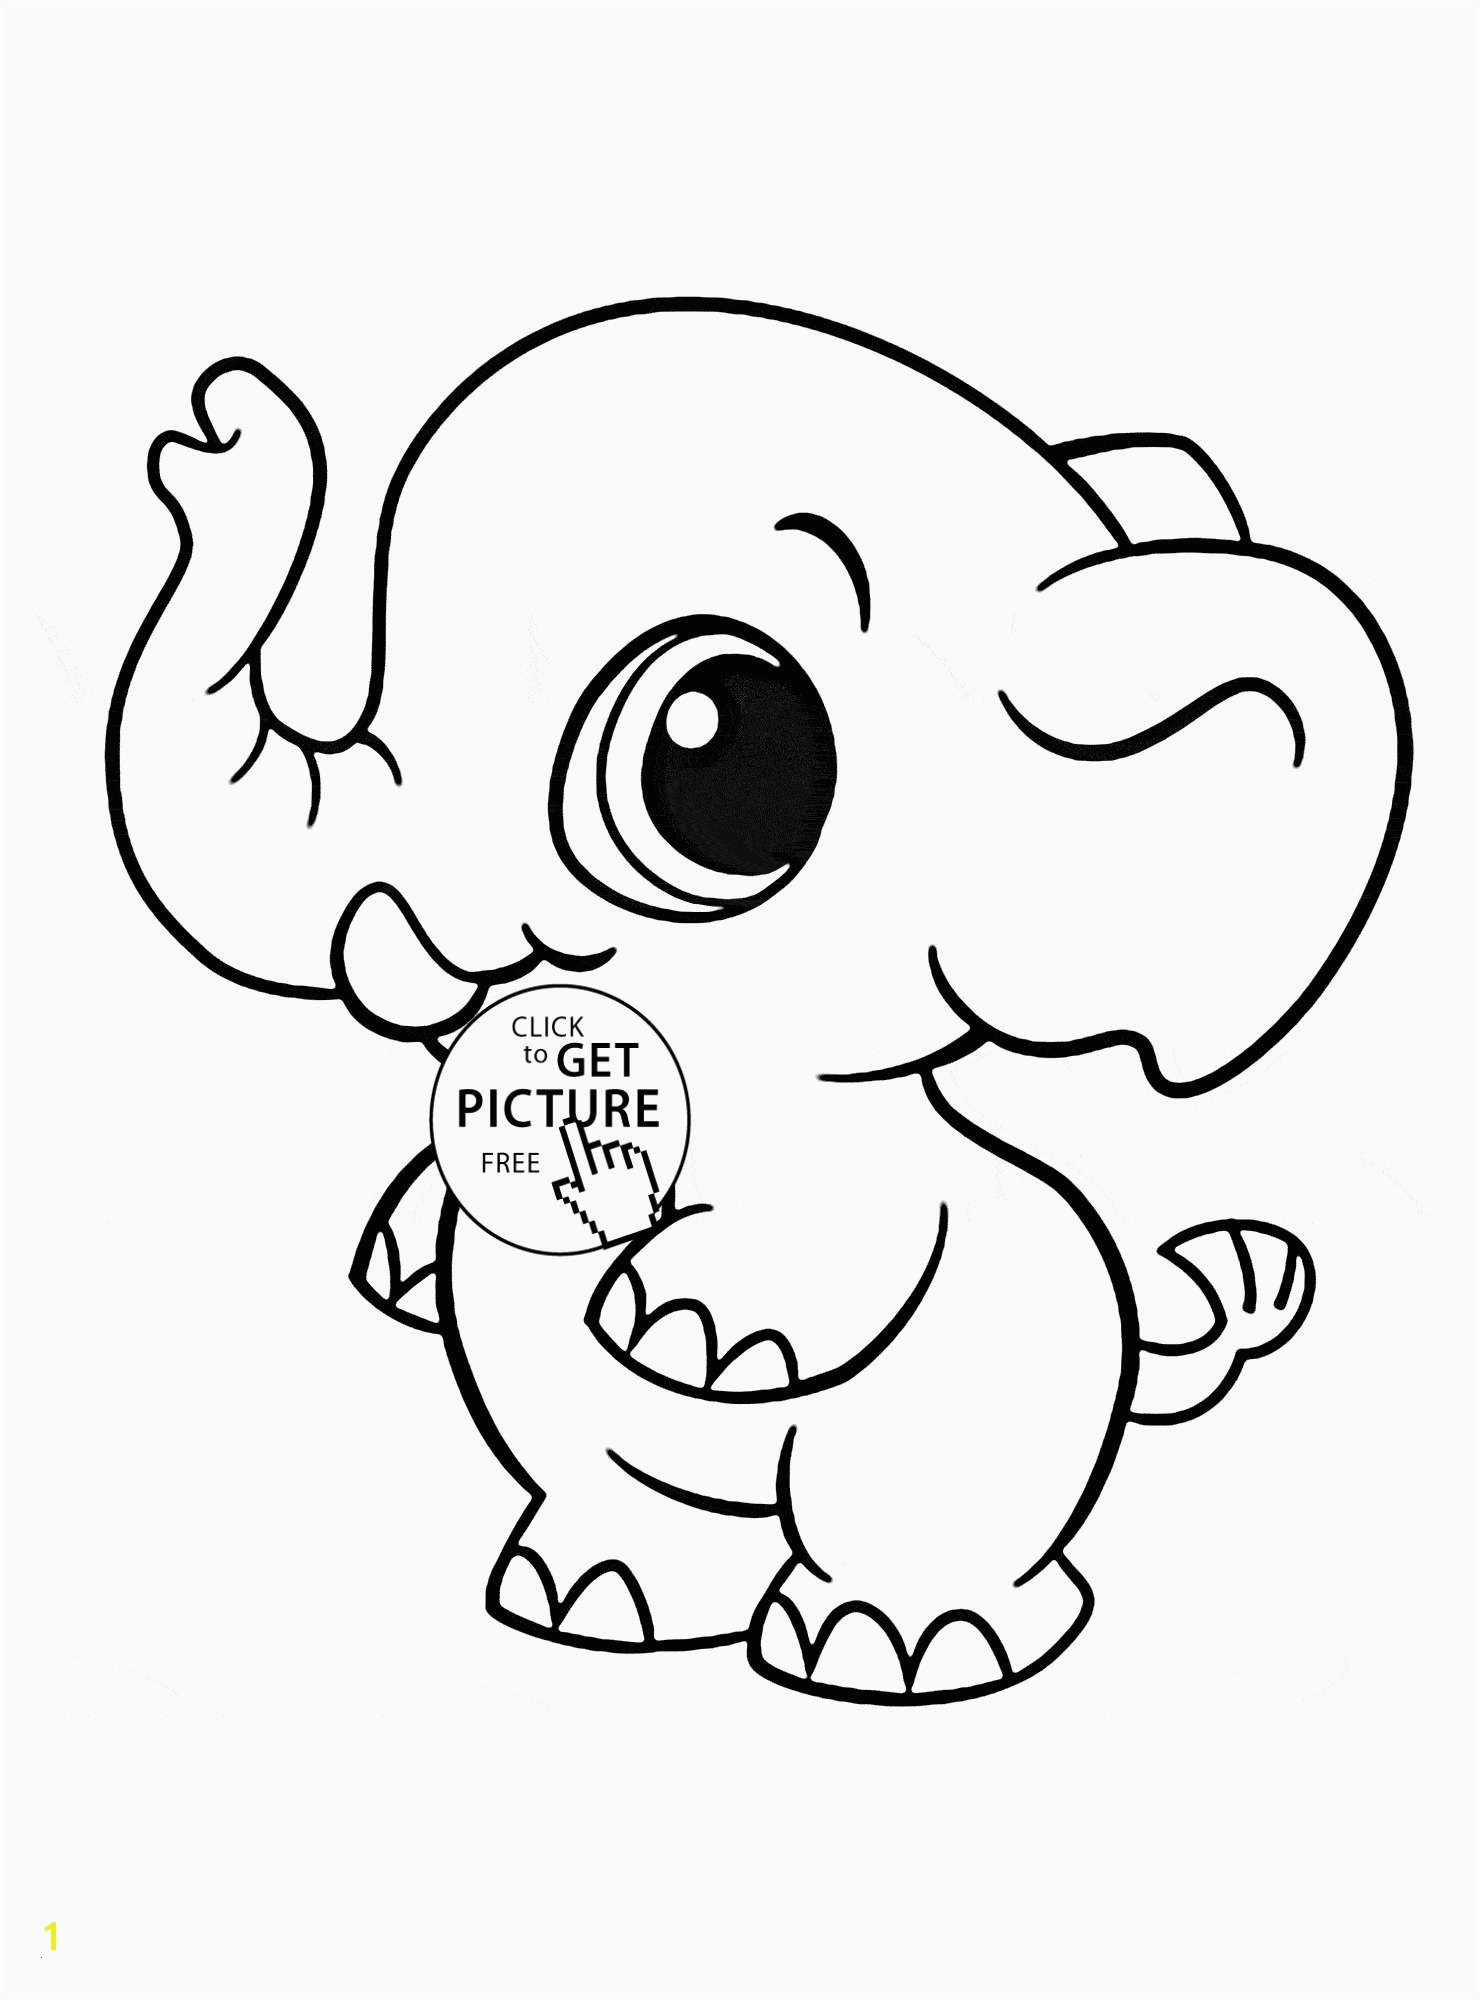 Printable Christmas Coloring Pagesindian Elephant Coloring Pages Printable